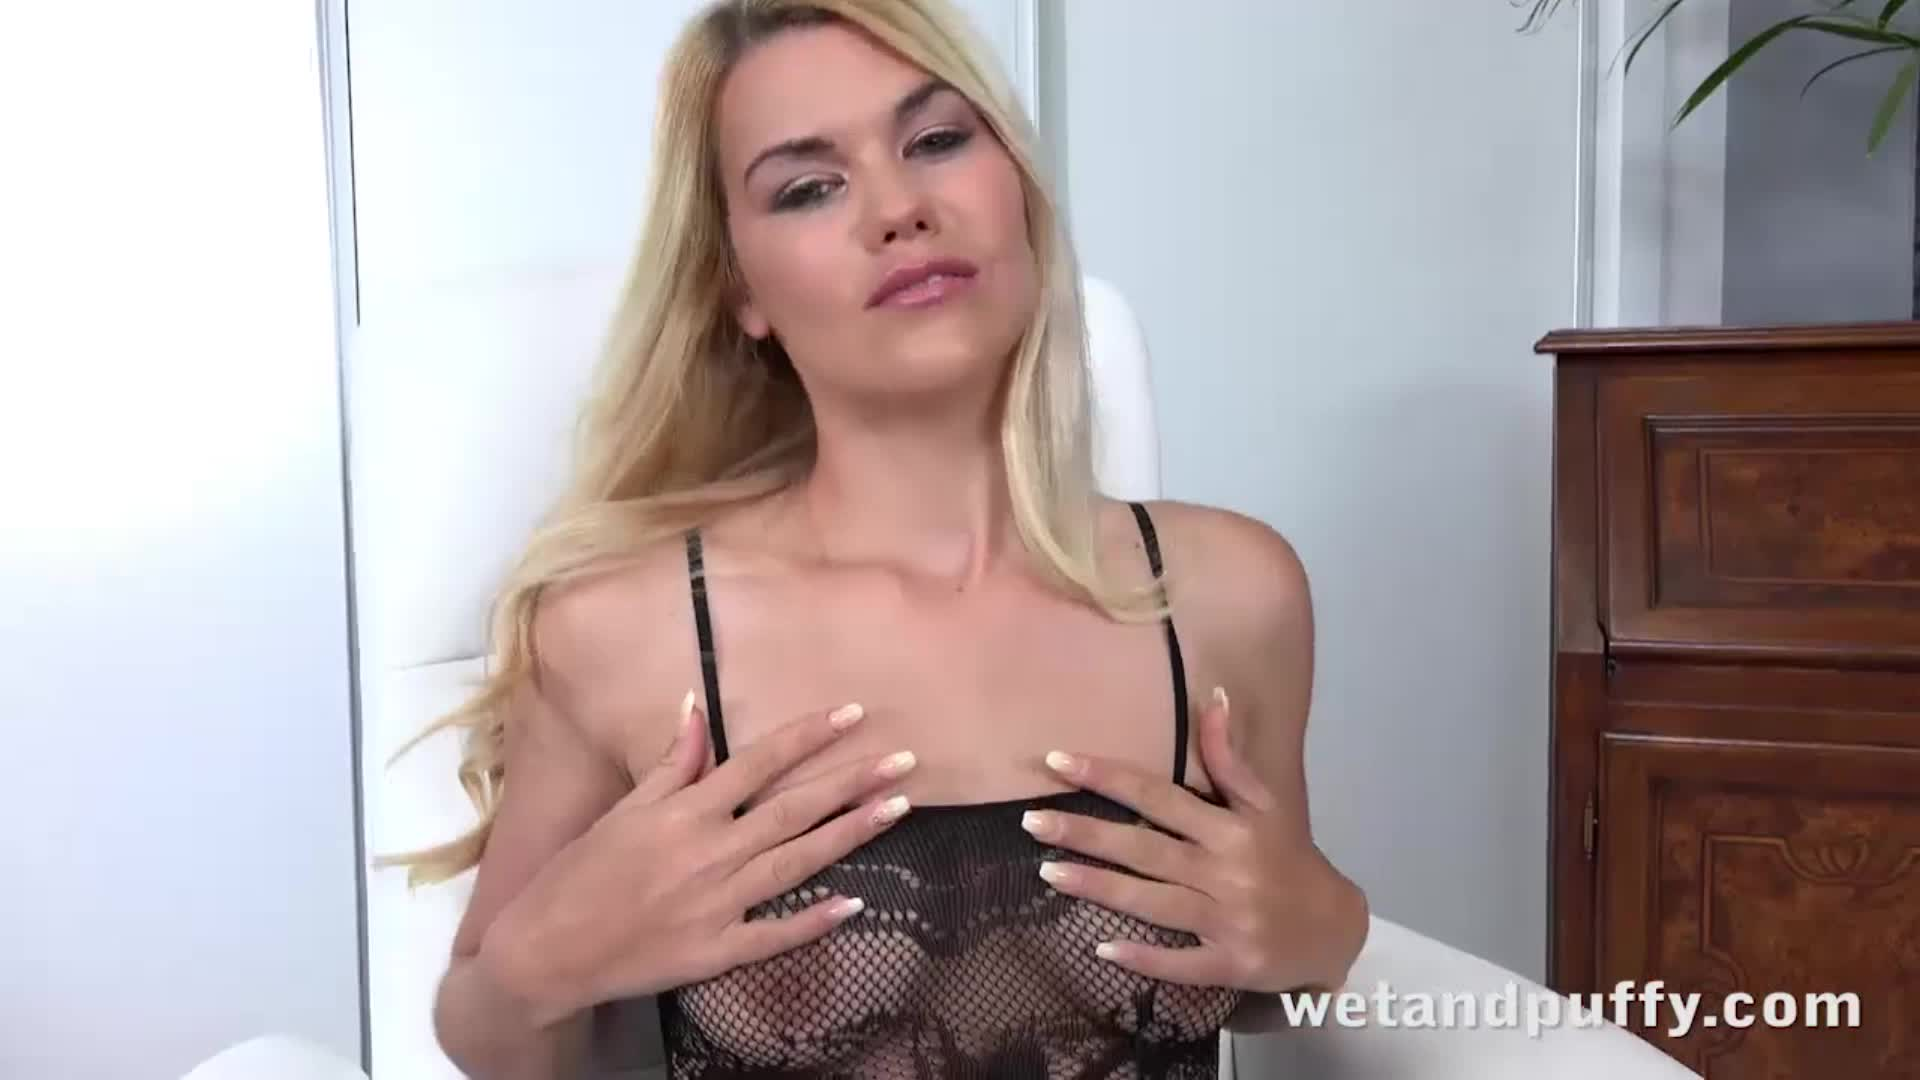 Blonde Delphine masturbating and toying her puffy pussy to orgasm